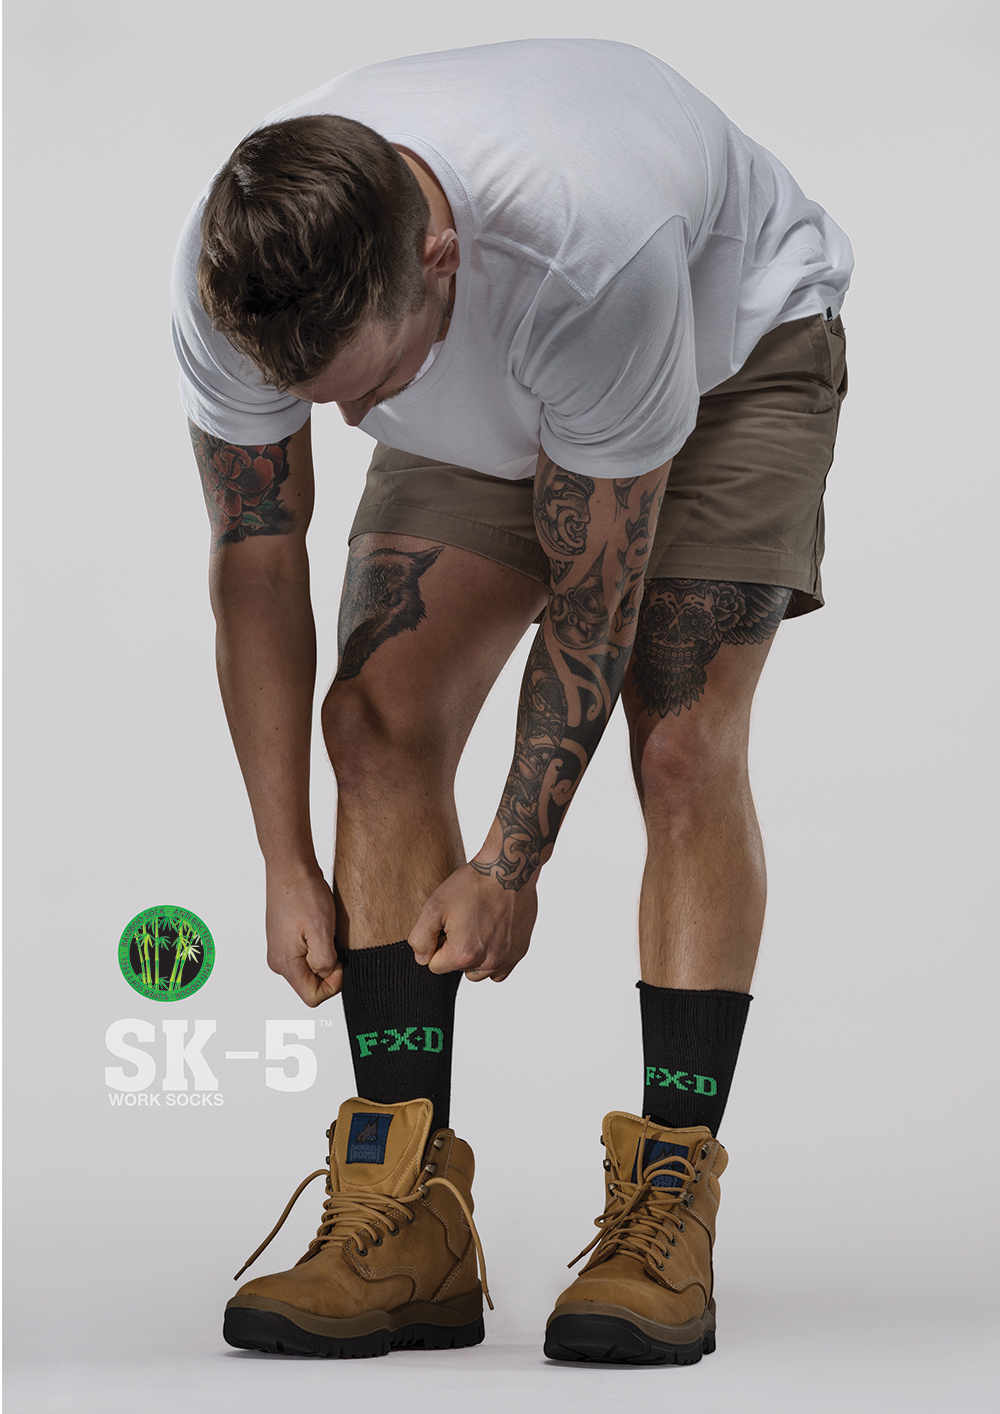 FXD SK-5 Bamboo Work Socks   Features:  -FX71439001 -Natural Bamboo -Anti Odour -Anti Bacterial -Super Soft Feel -Extra Thick Boot Sock